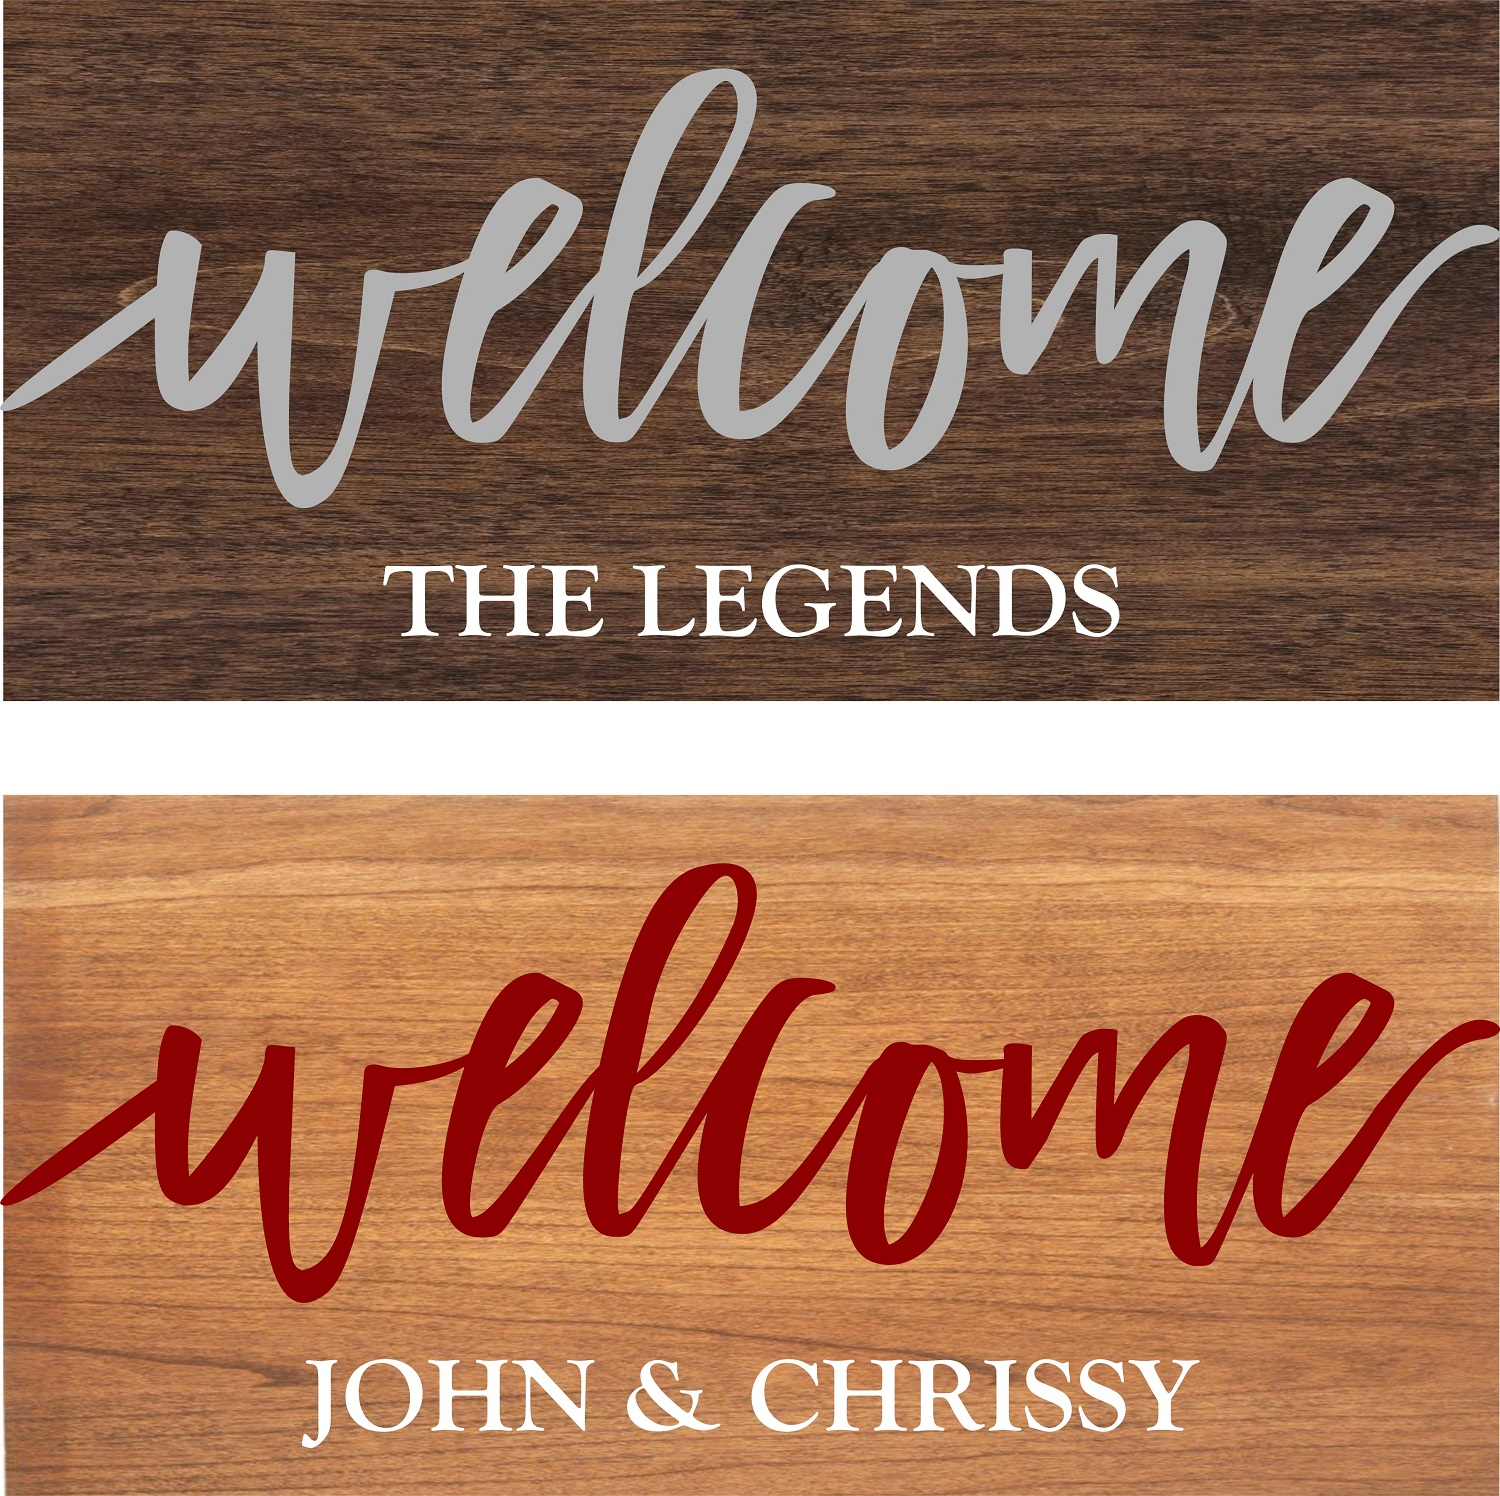 """Customizable Welcome Sign"" DIY Wood Sign Kit (12inx24in)"